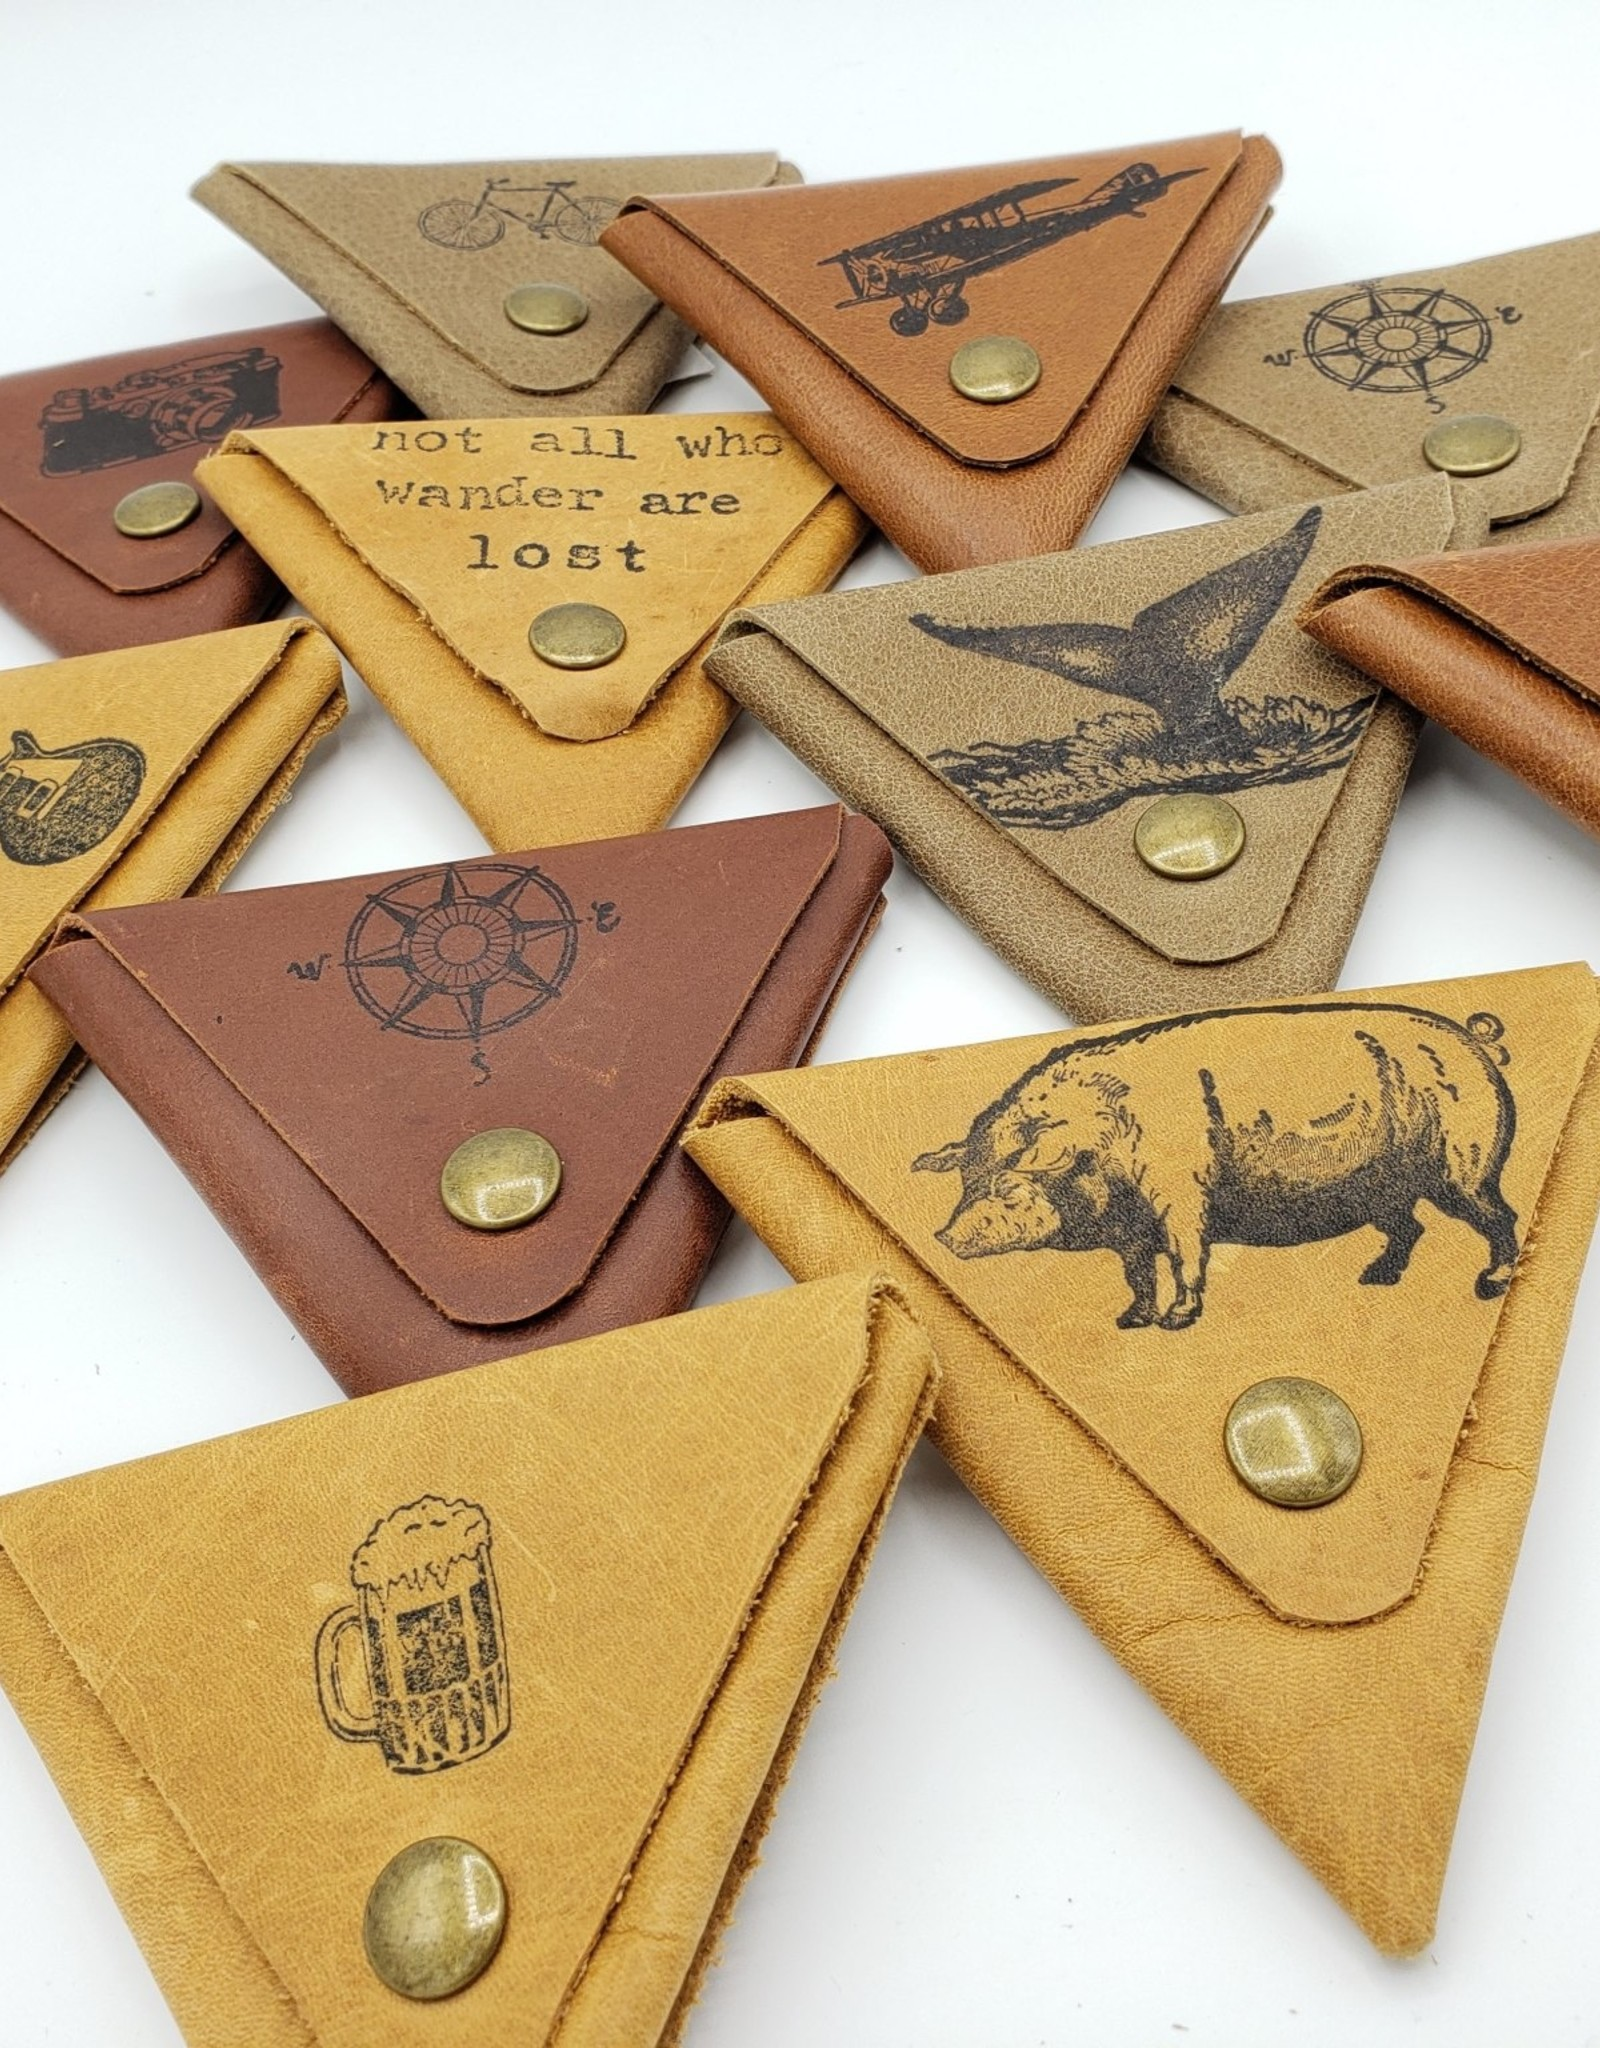 In Blue Handmade Airplane - Triangle Leather Coin Pouch